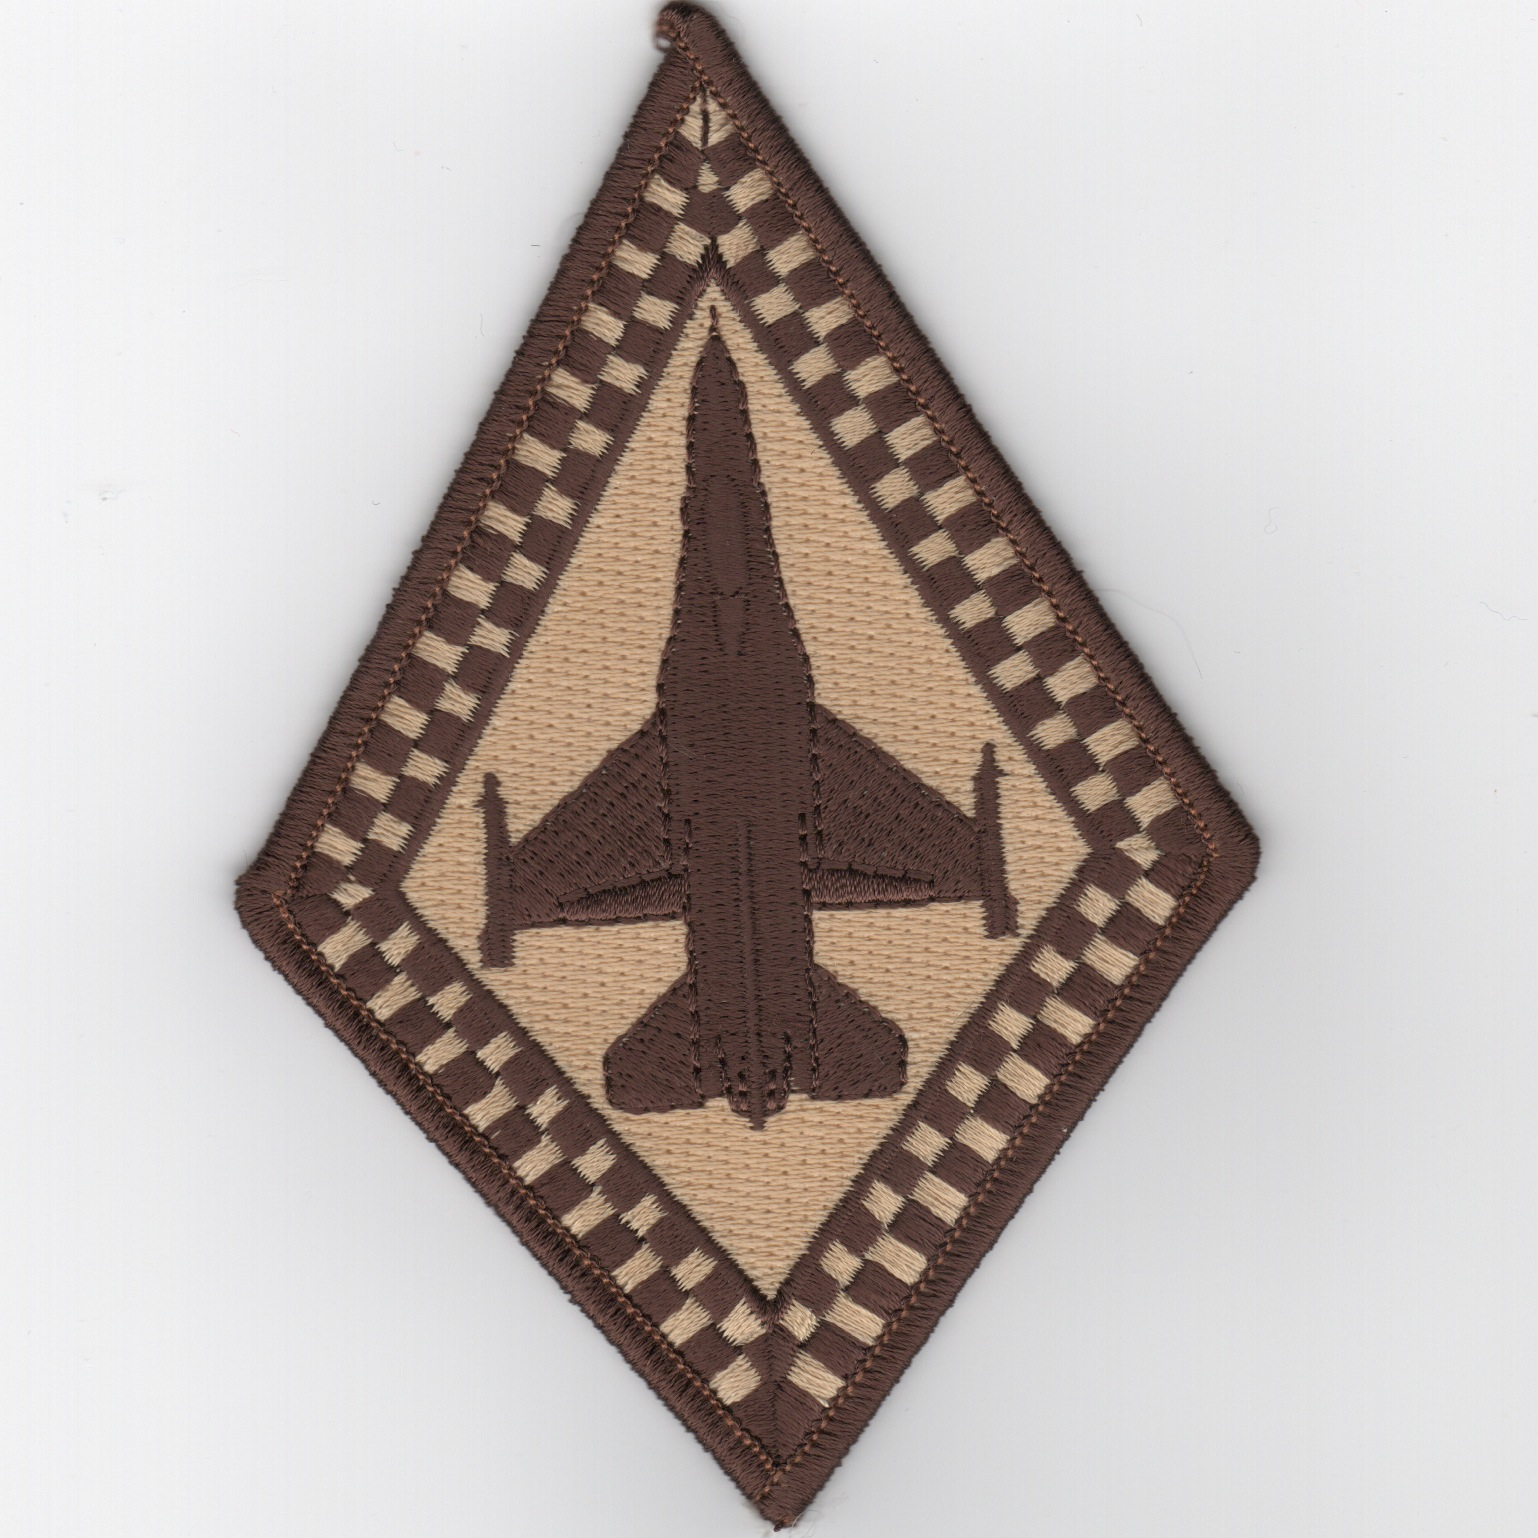 93d FS 'Aircraft' Patch (Des)